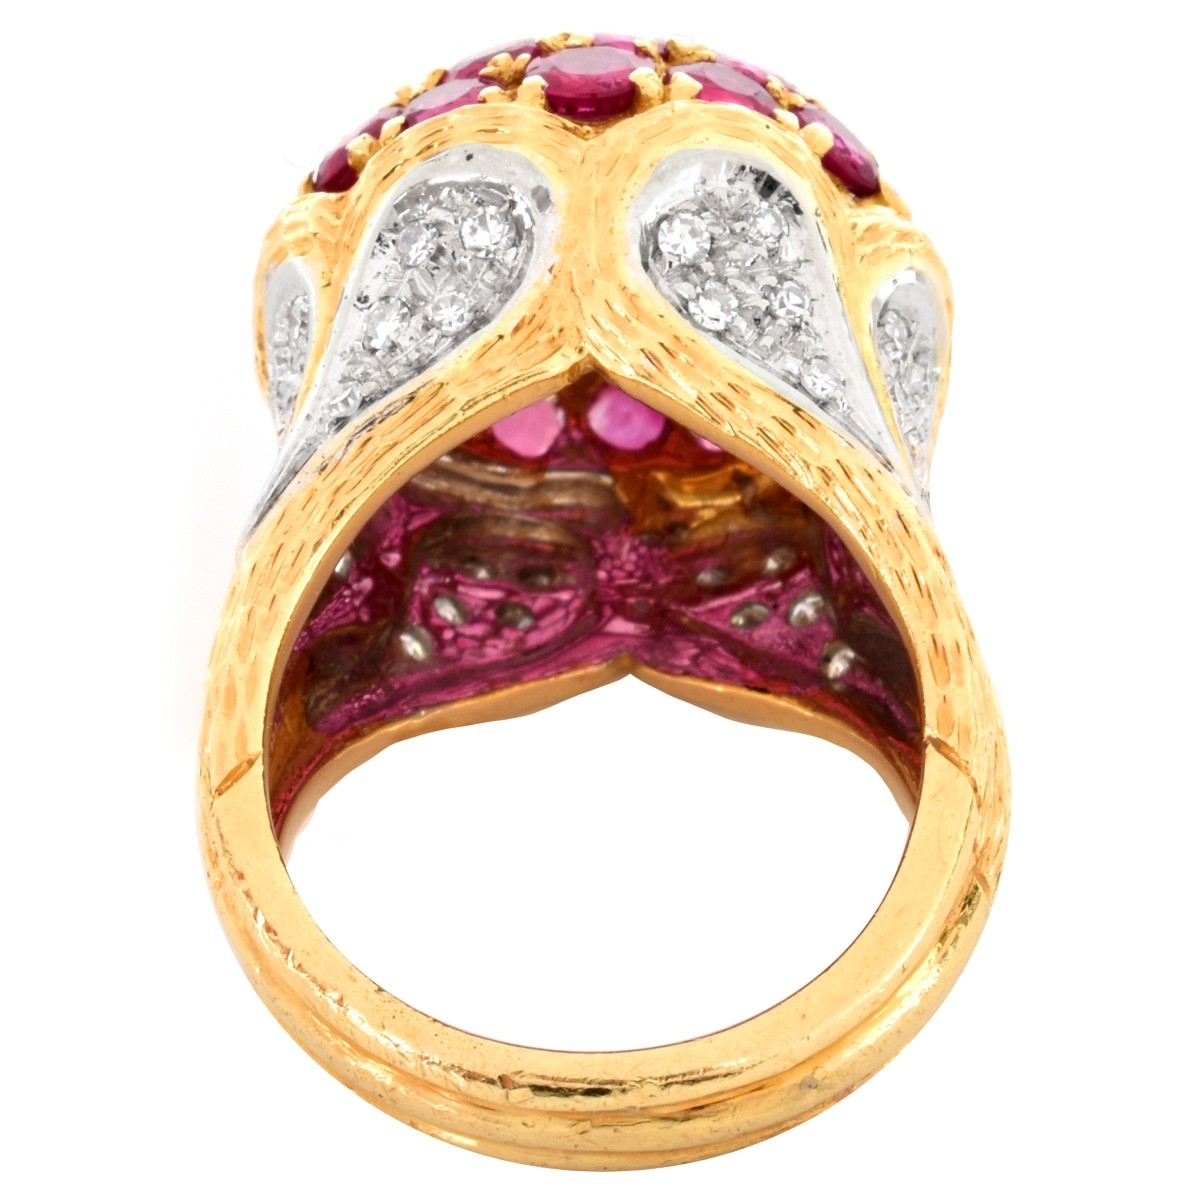 Spitzer & Furhmann Ruby and Diamond Ring